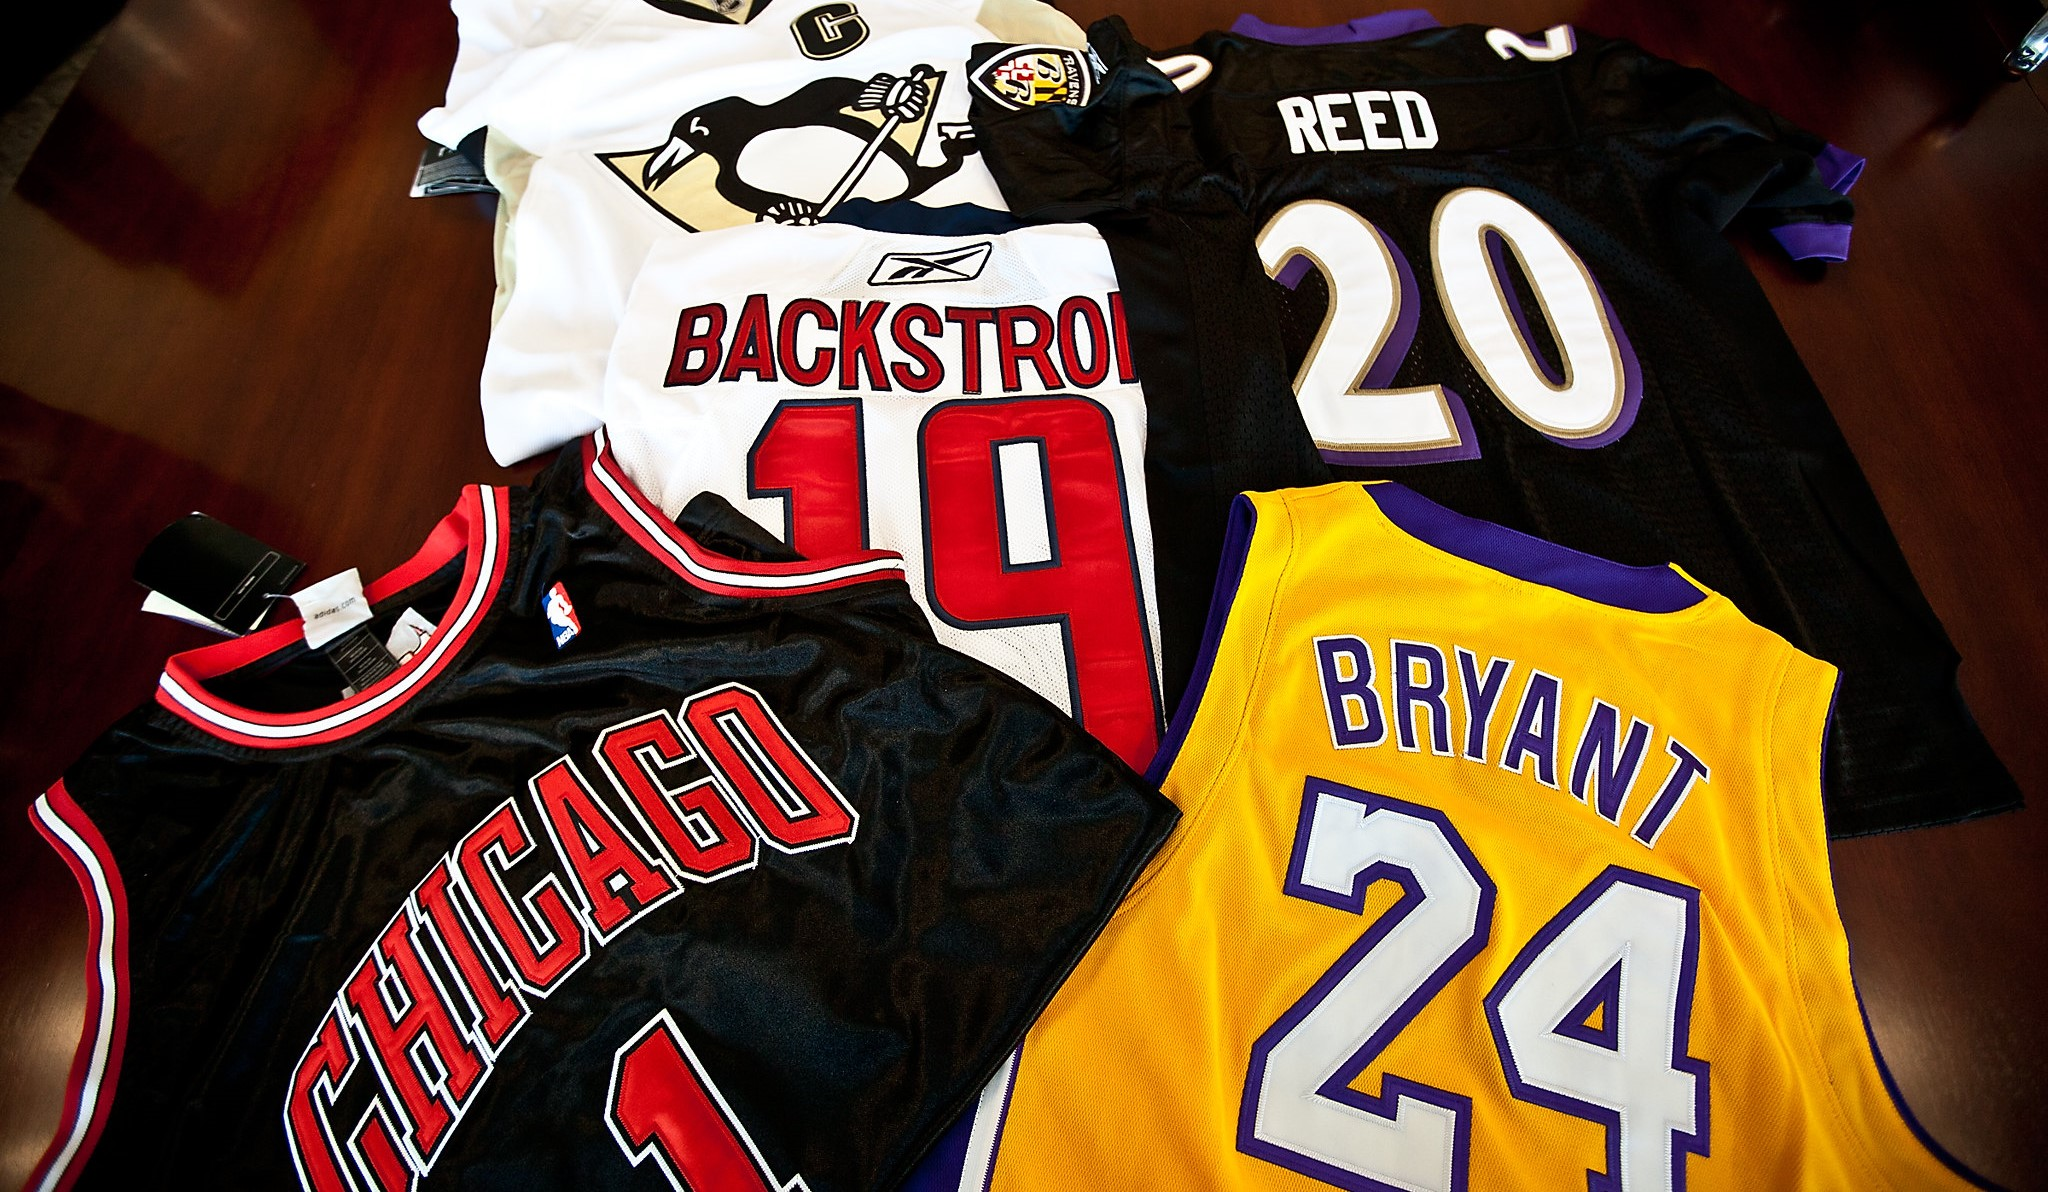 crackdown on NBA counterfeiters in Chicago